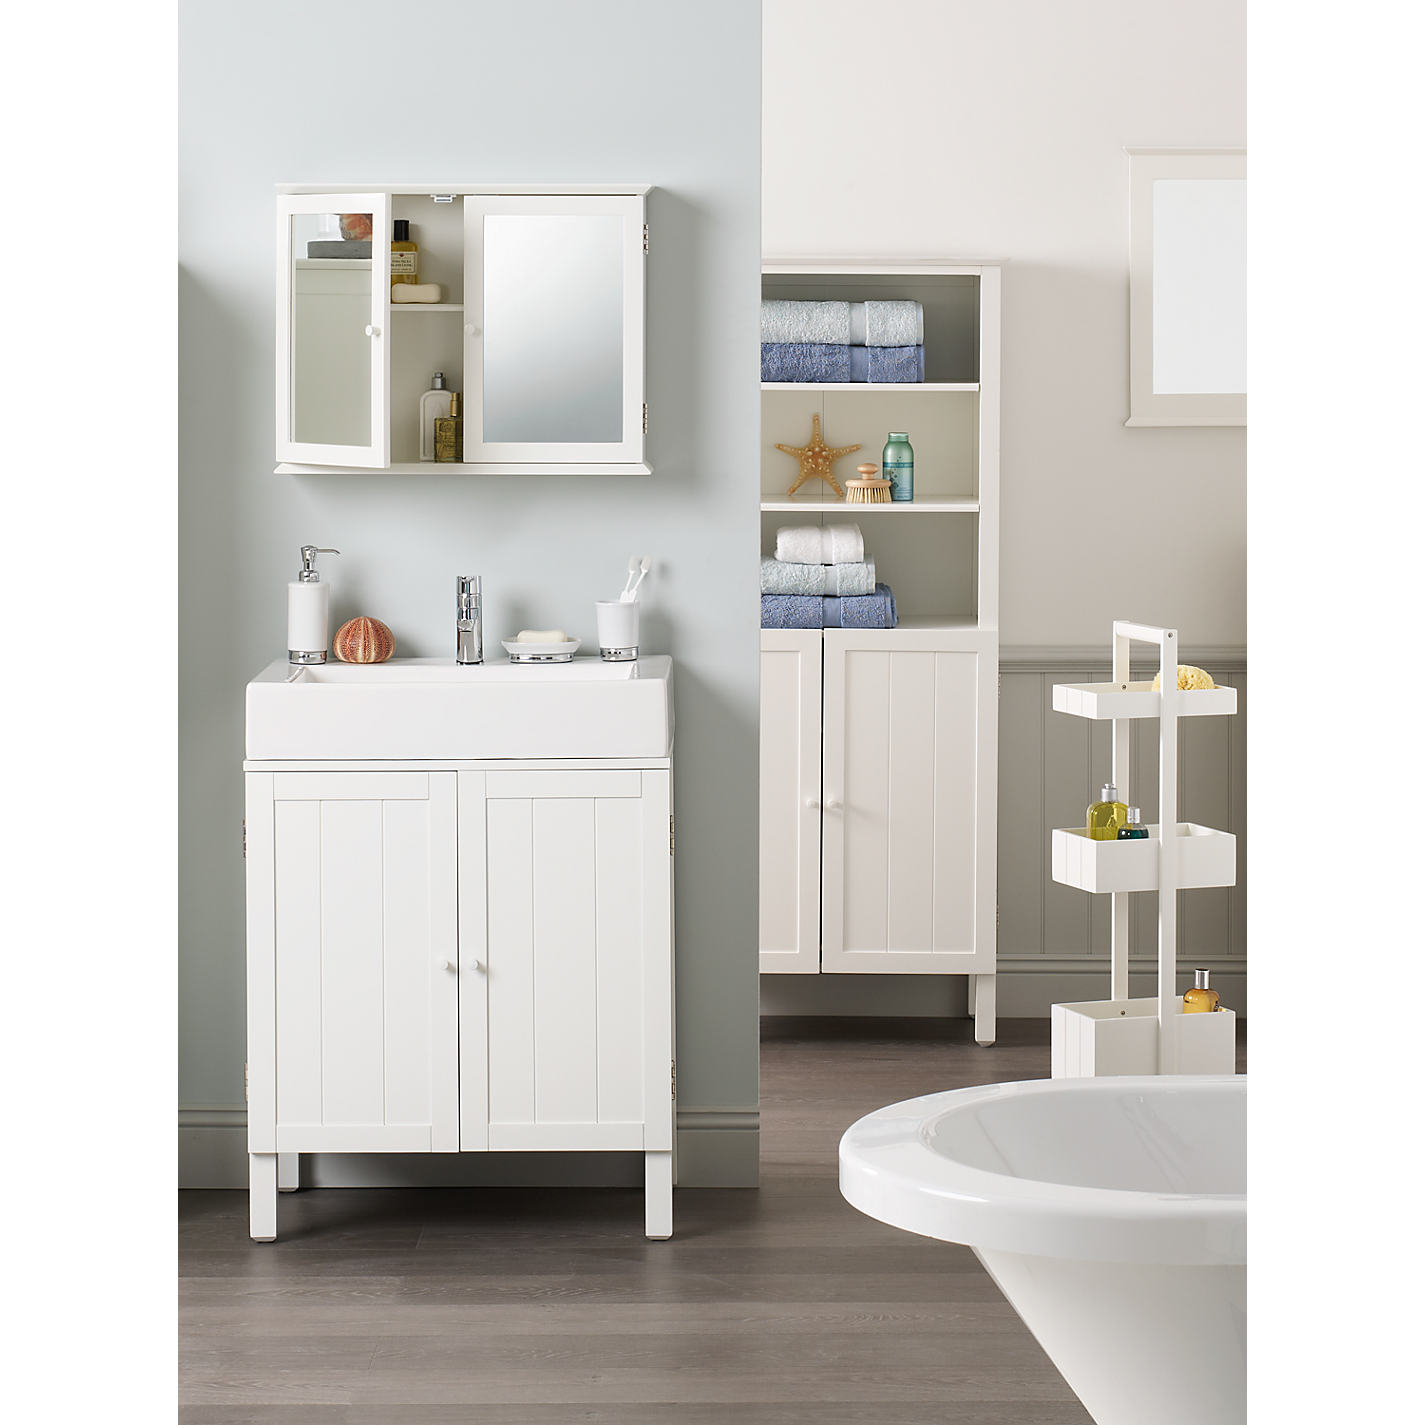 bathroom sinks john lewis buy john lewis st ives double mirrored bathroom cabinet john lewis - Bathroom Cabinets John Lewis